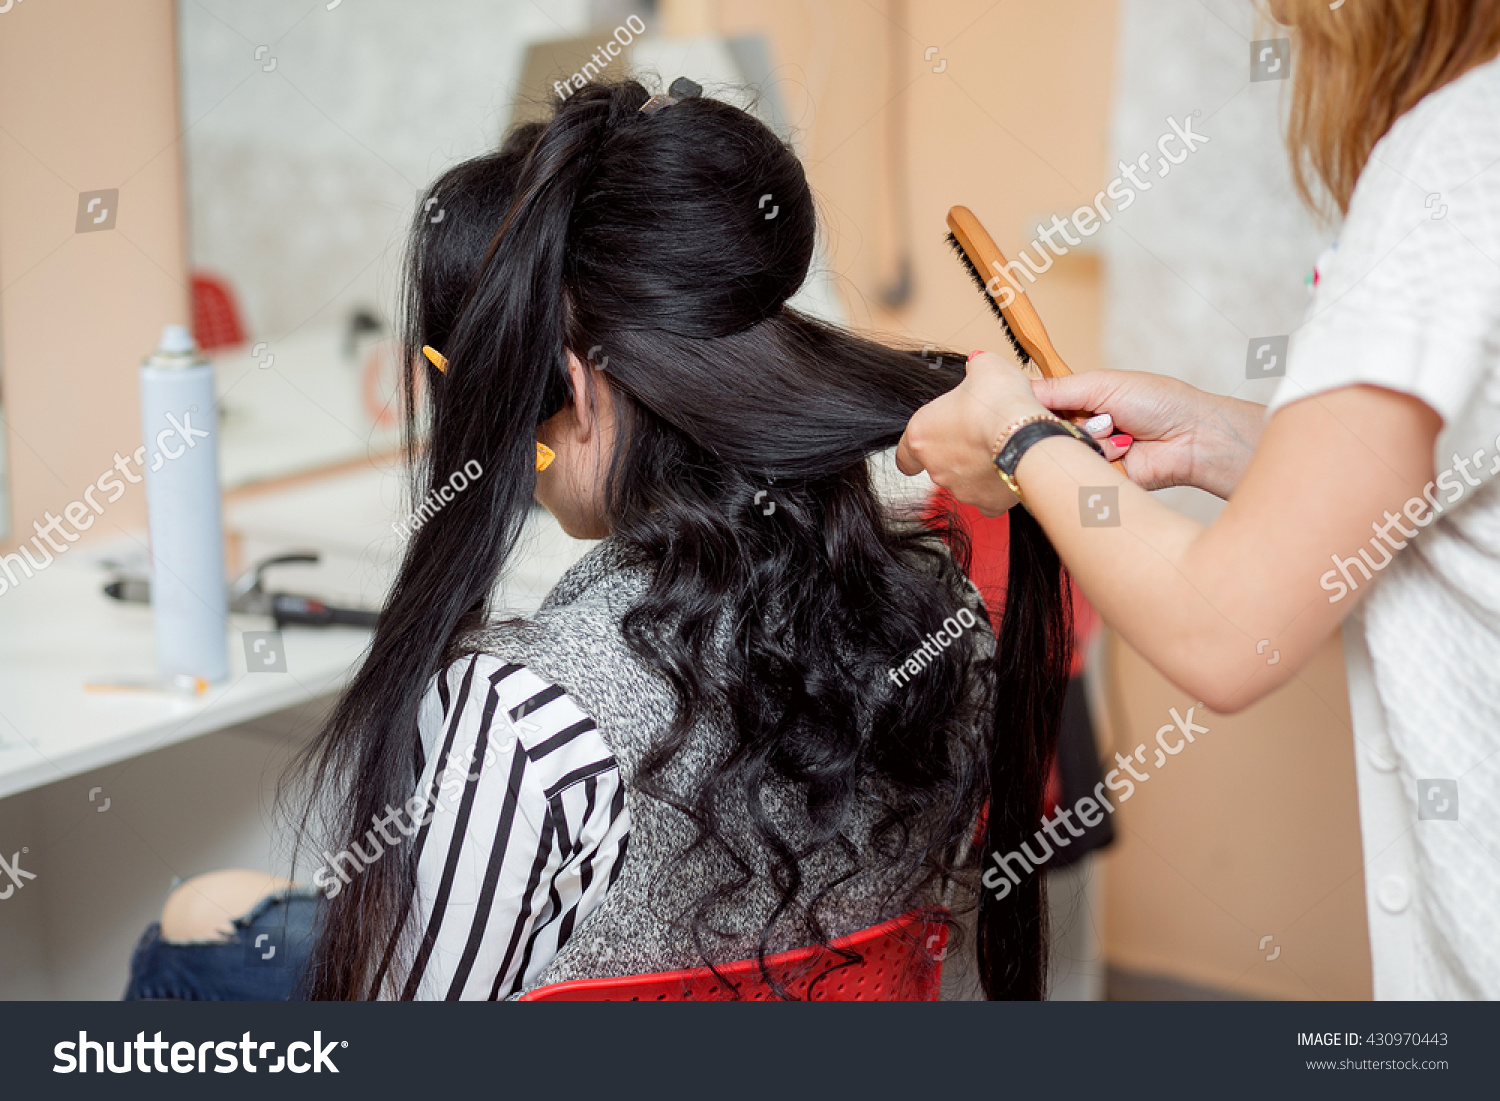 Barber Makes Evening Wedding Hairstyle Long People Stock Image 430970443